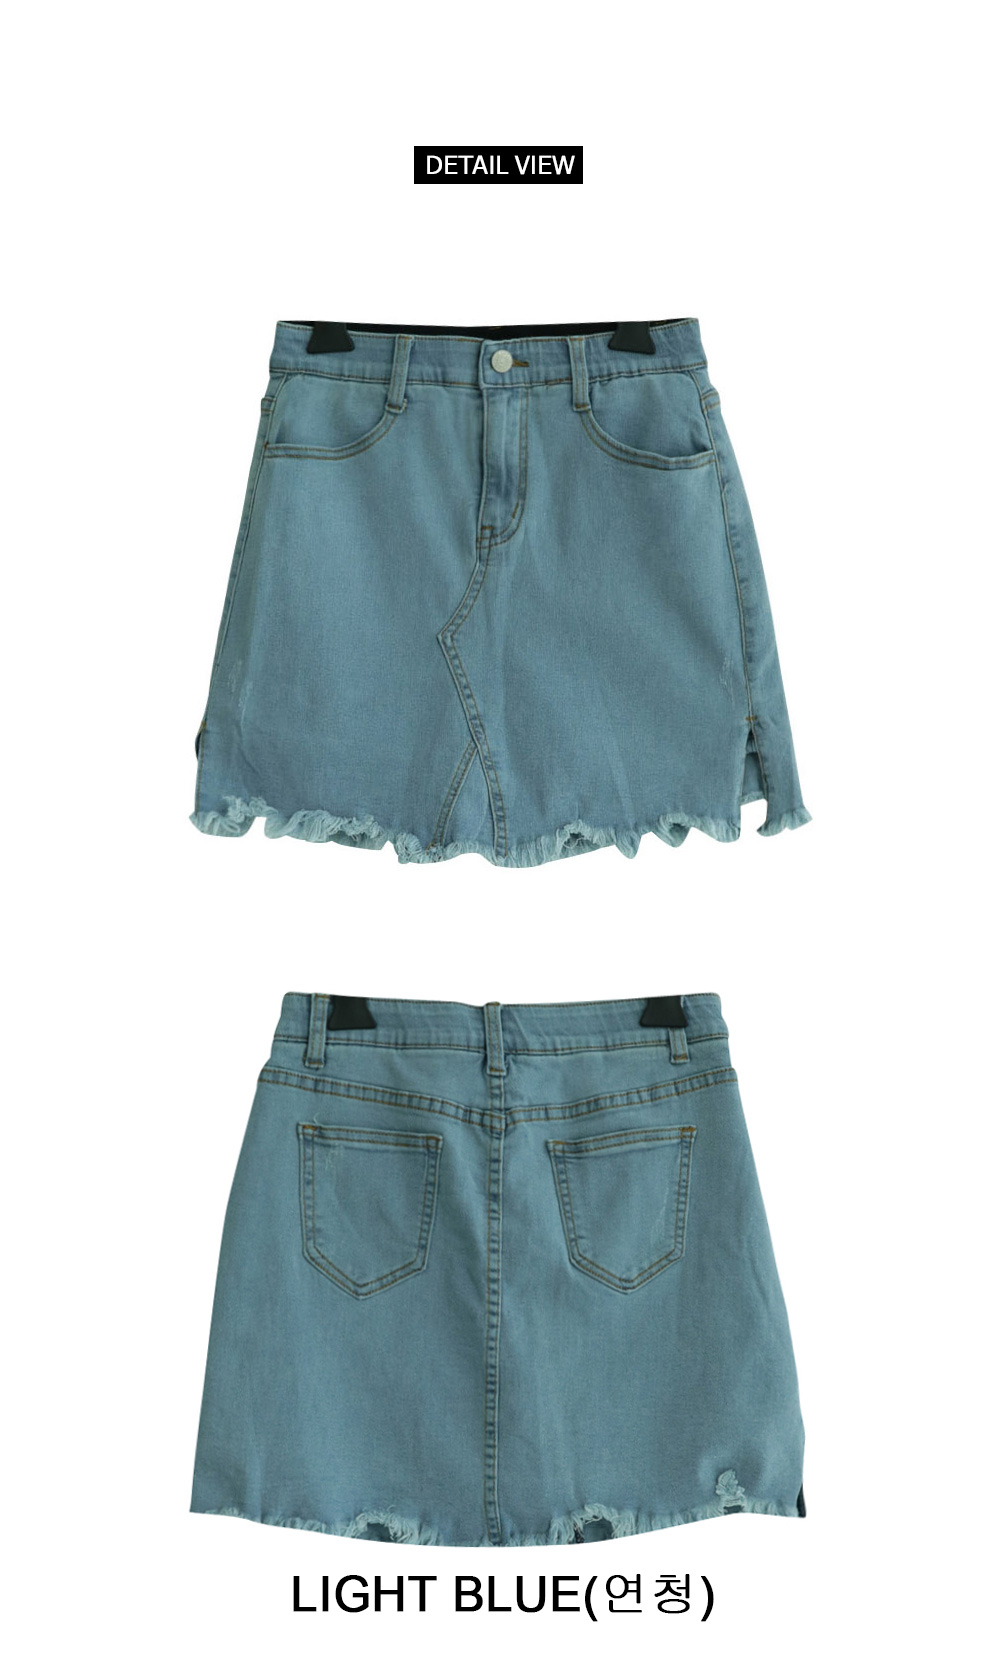 Hemmed skirt denim skirt